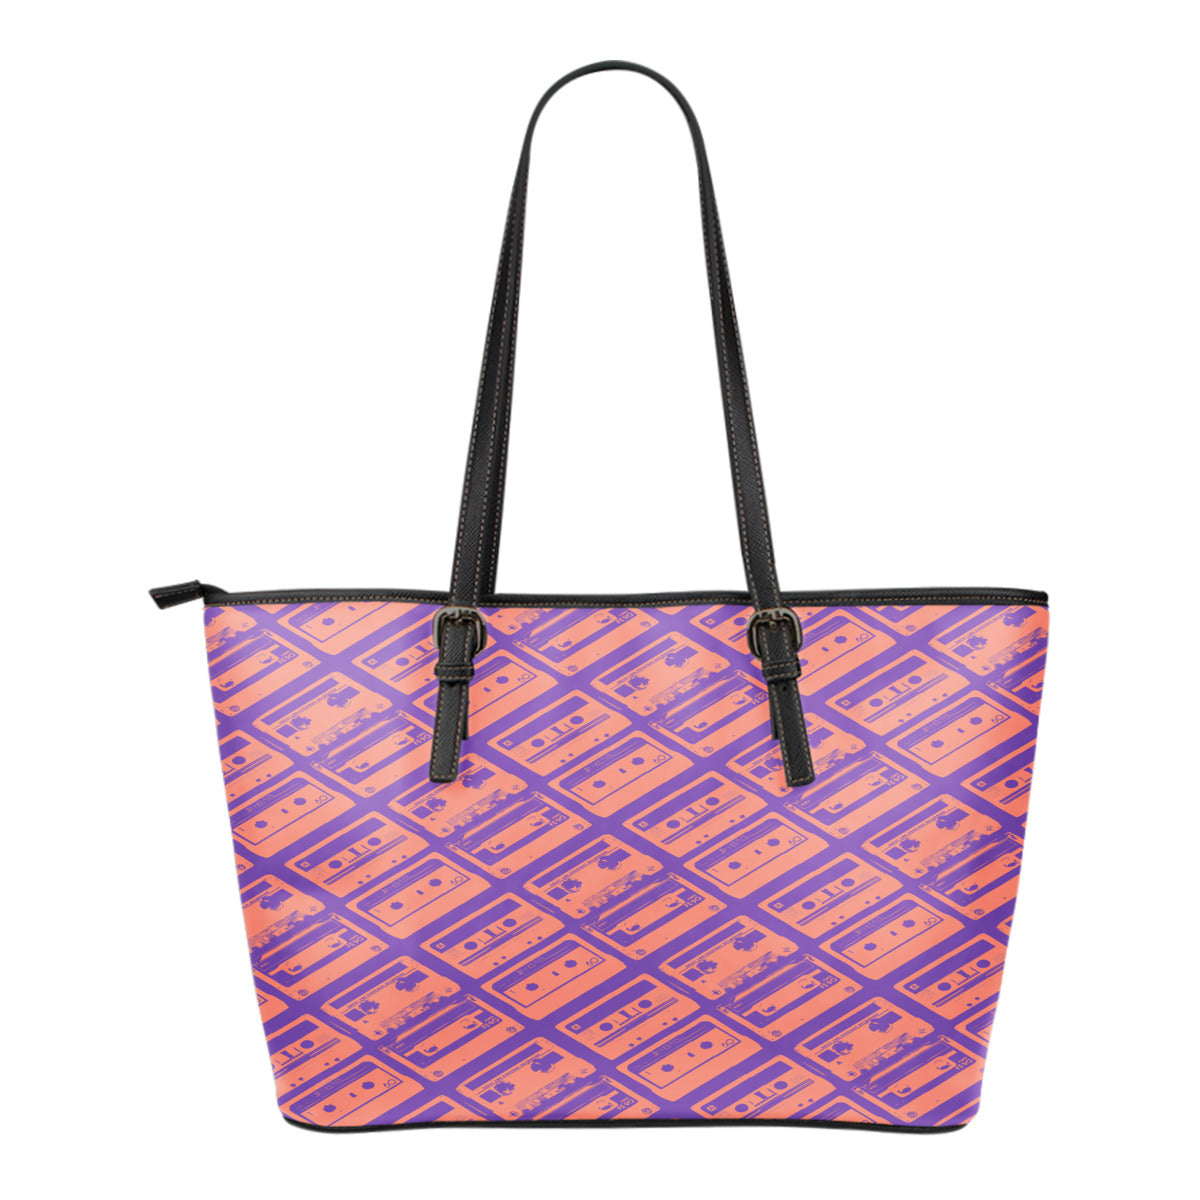 80s Boombox Themed Design C3 Women Small Leather Tote Bag